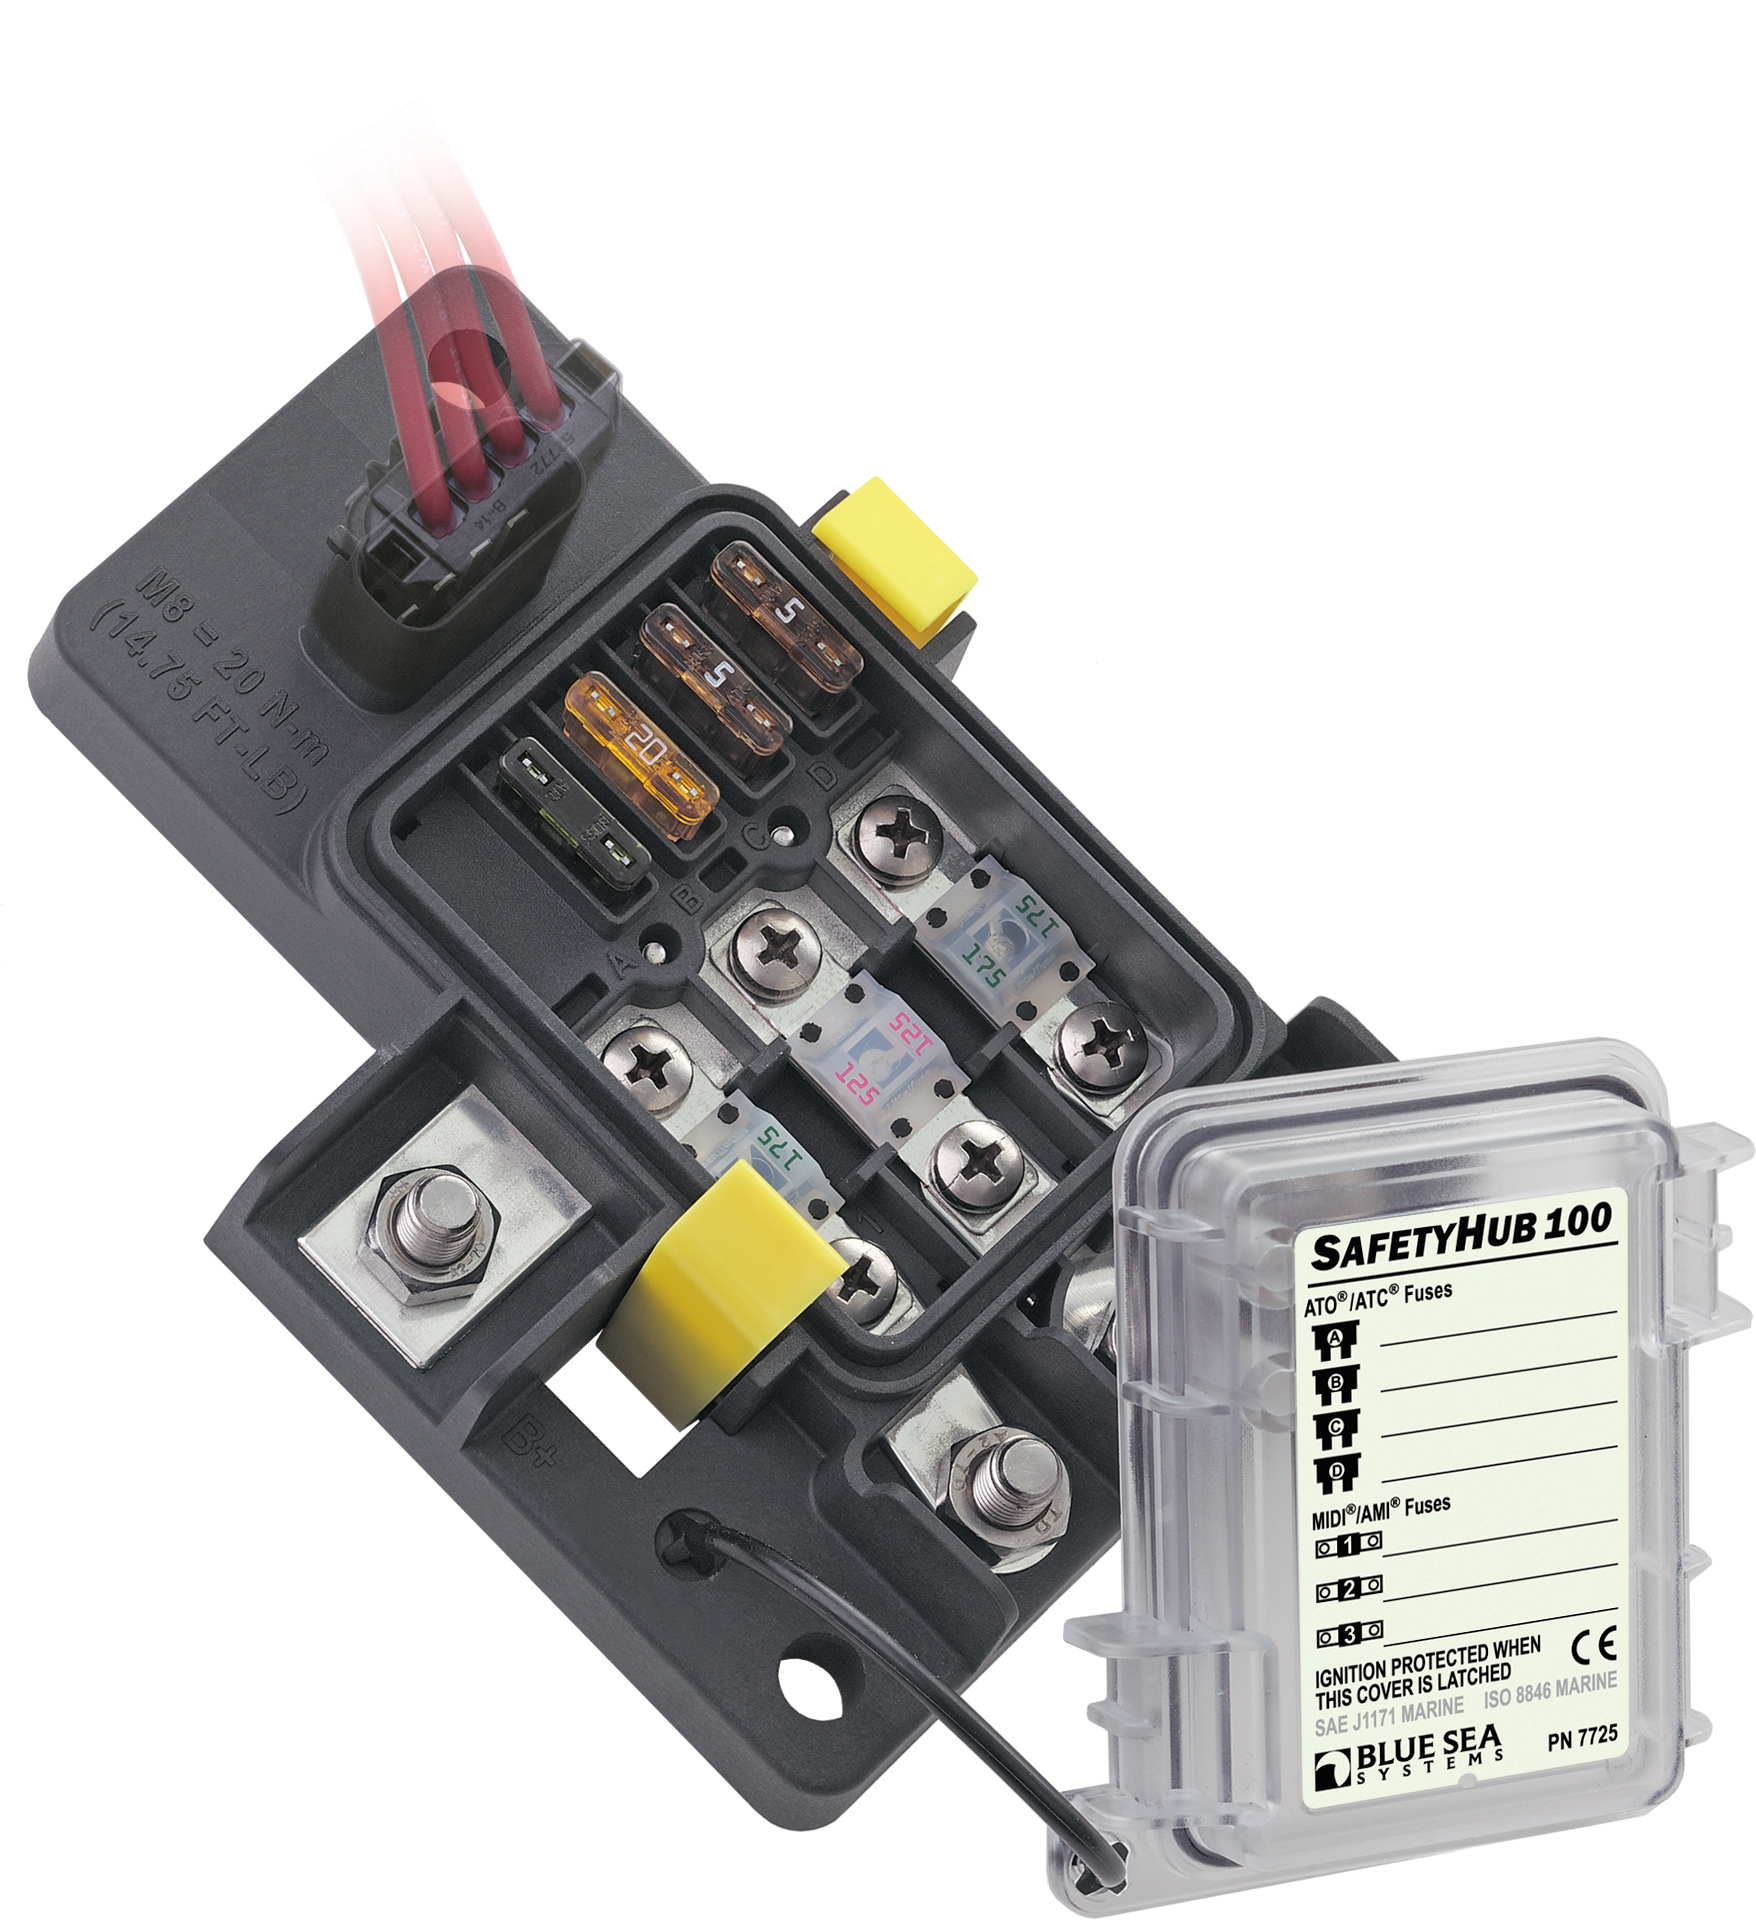 SafetyHub 100 Fuse Block